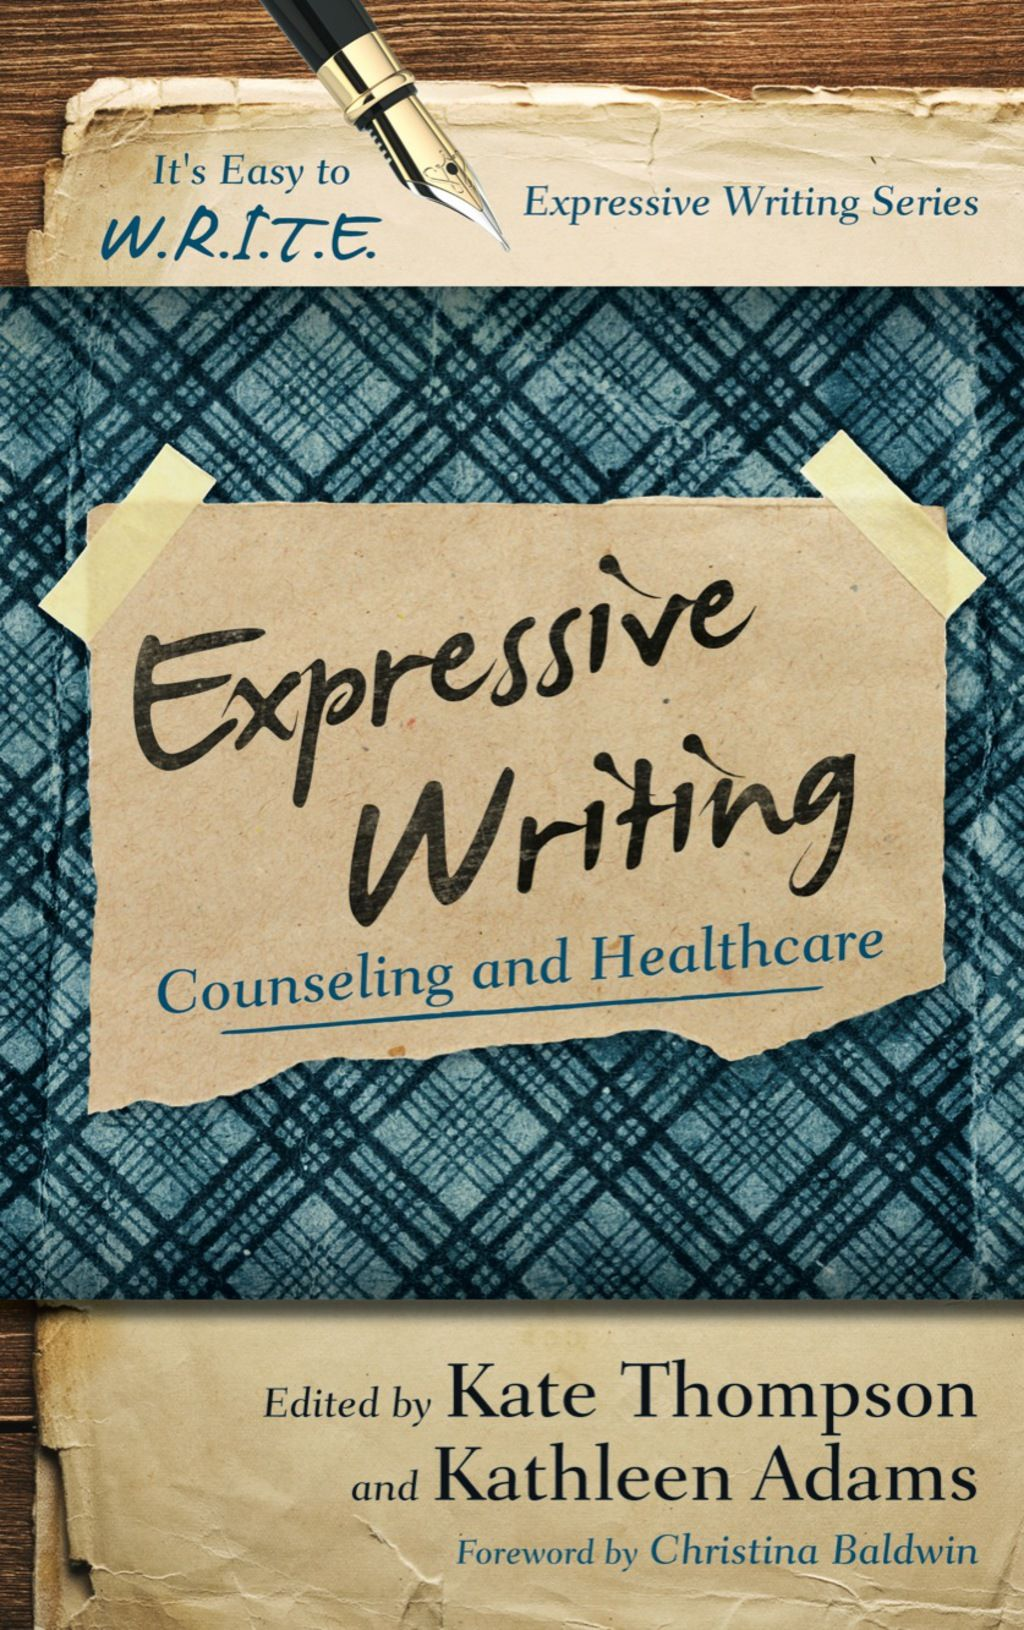 Expressive Writing (eBook) in 2019 Kate thompson